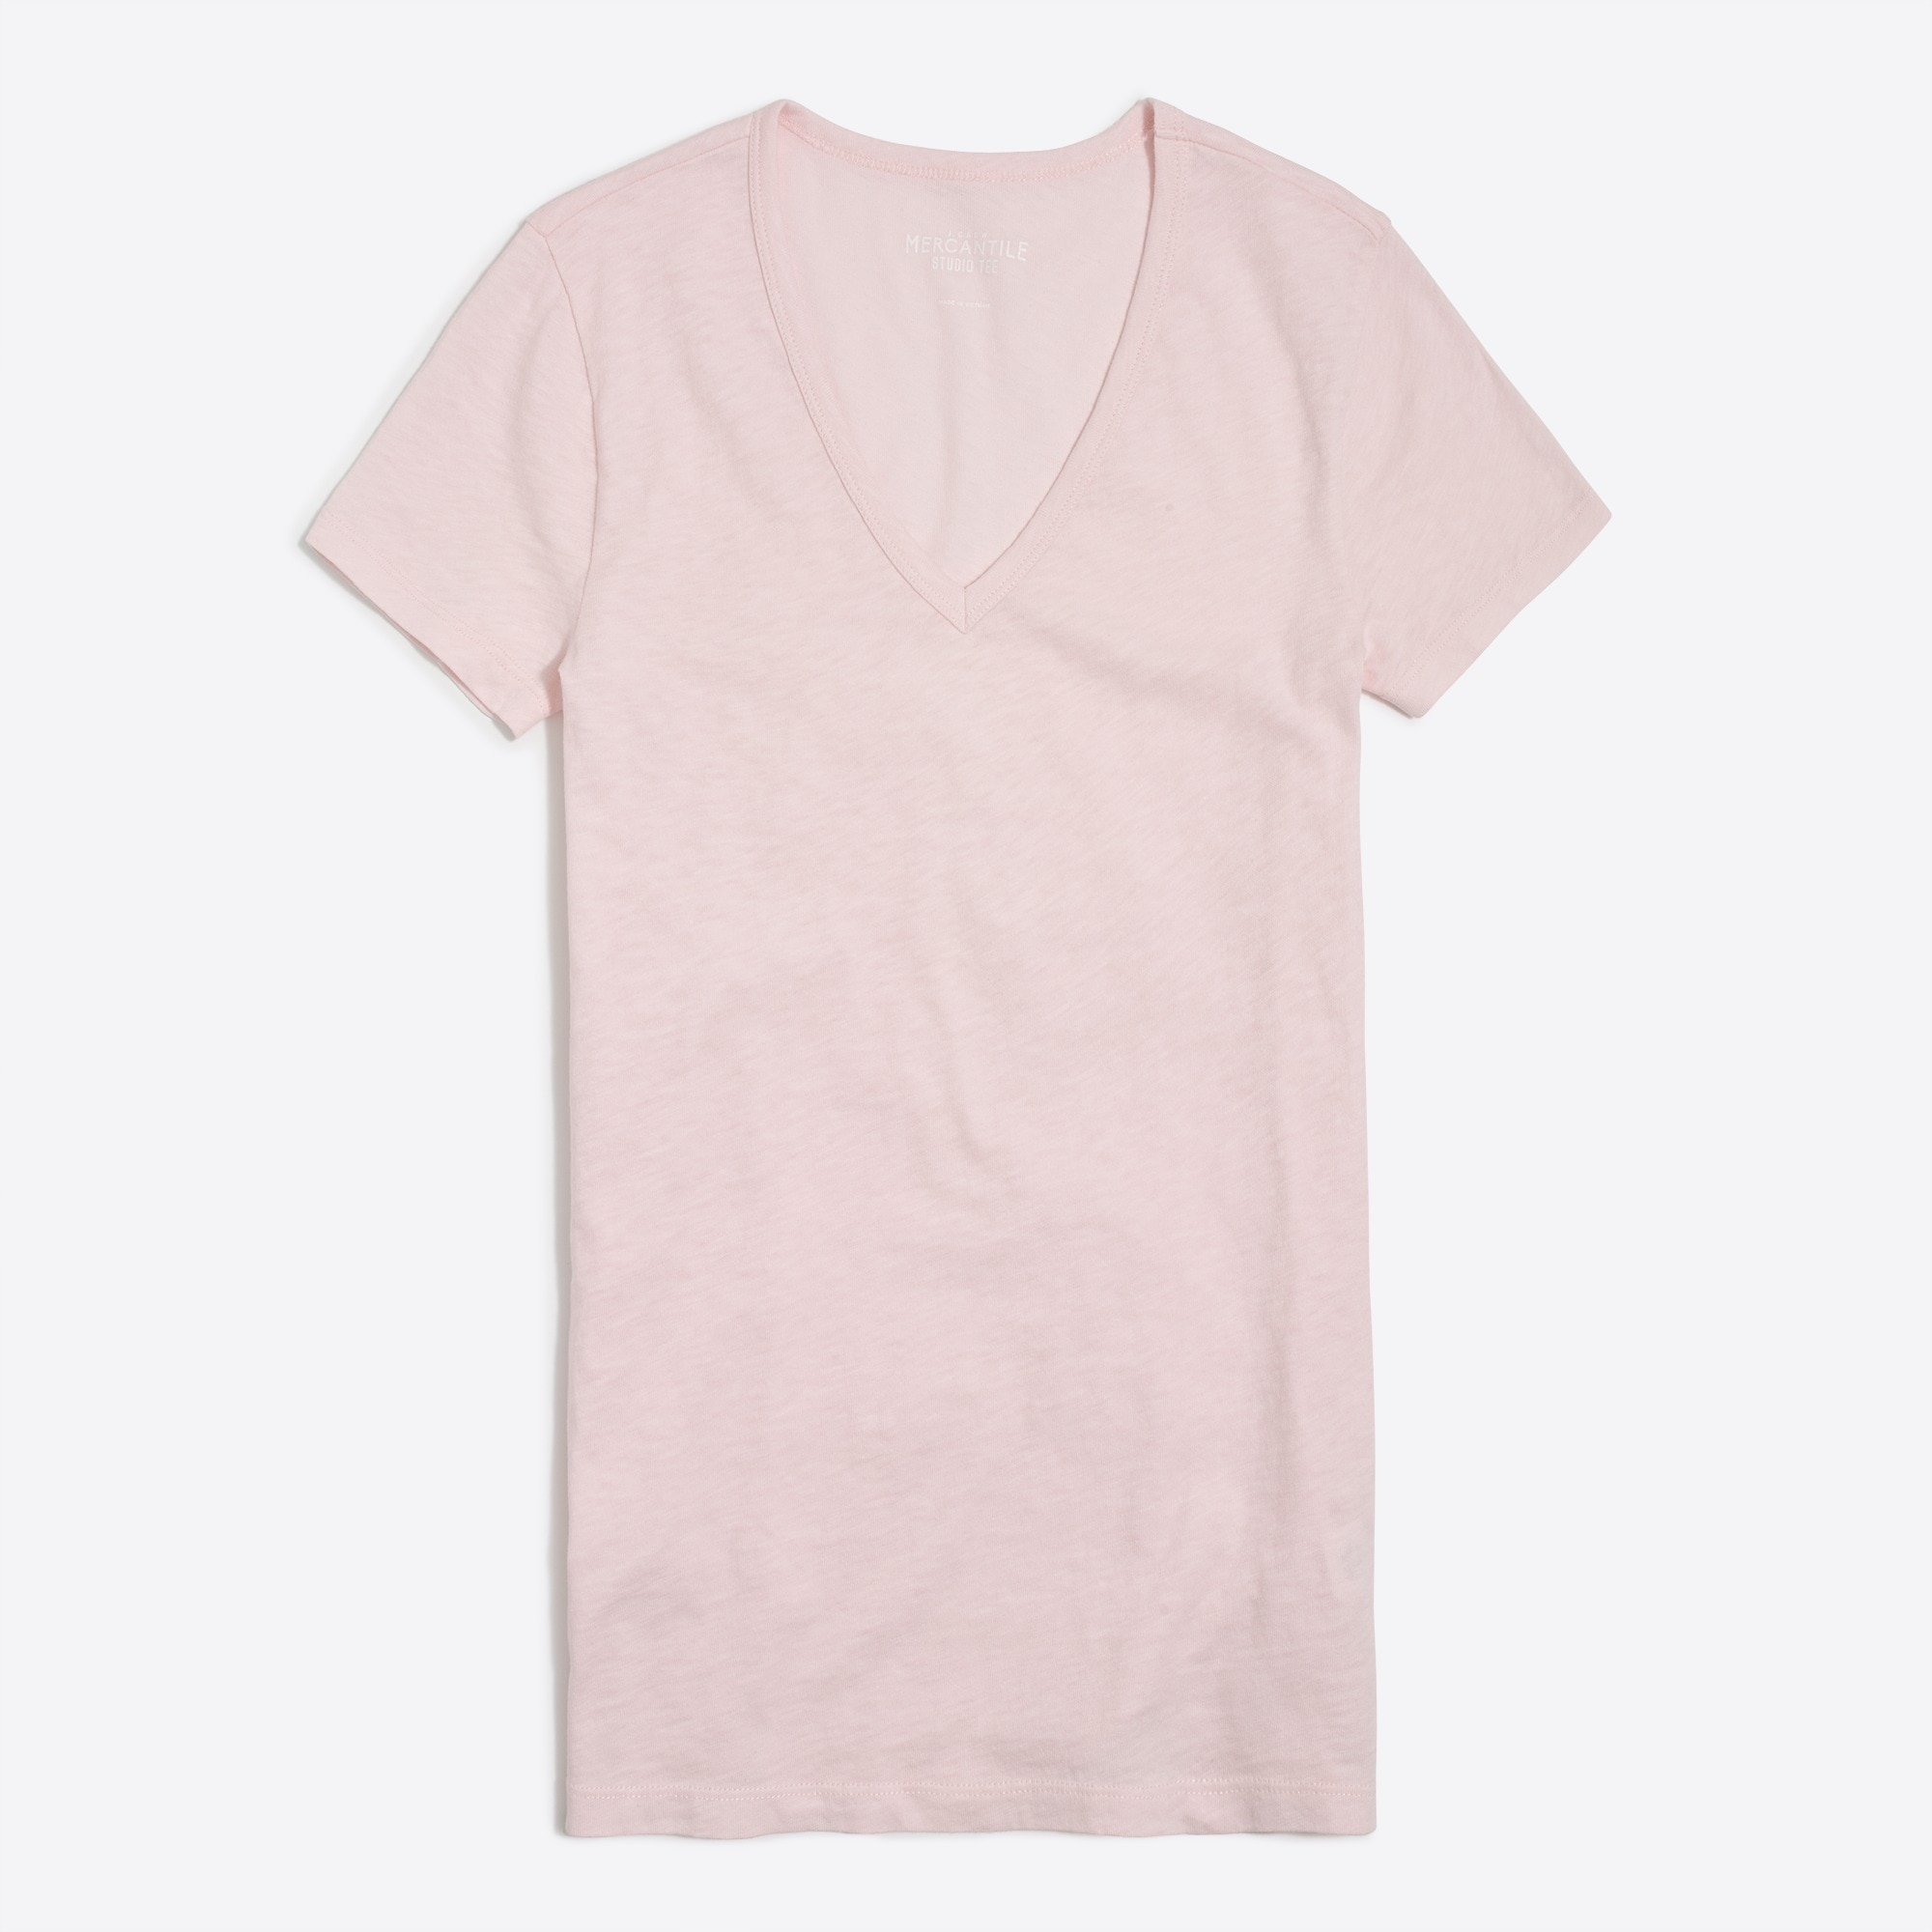 J.Crew Mercantile v-neck Studio T-shirt factorywomen new arrivals c